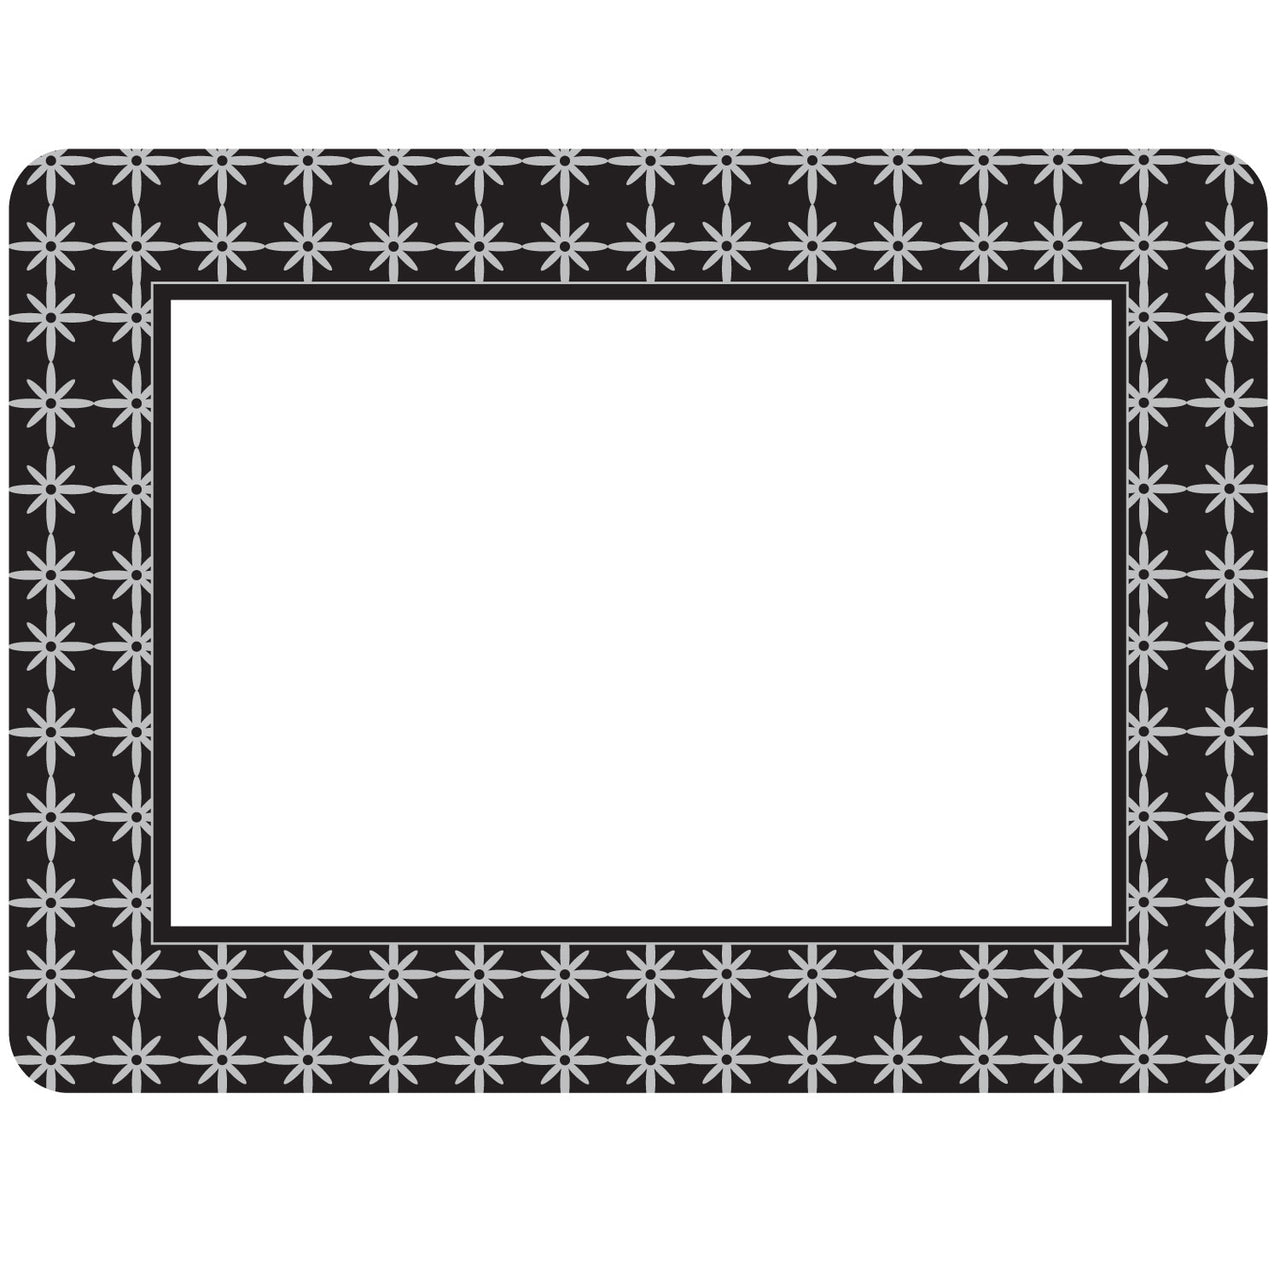 Grayscape Black Self-Stick Picture Frames Collection